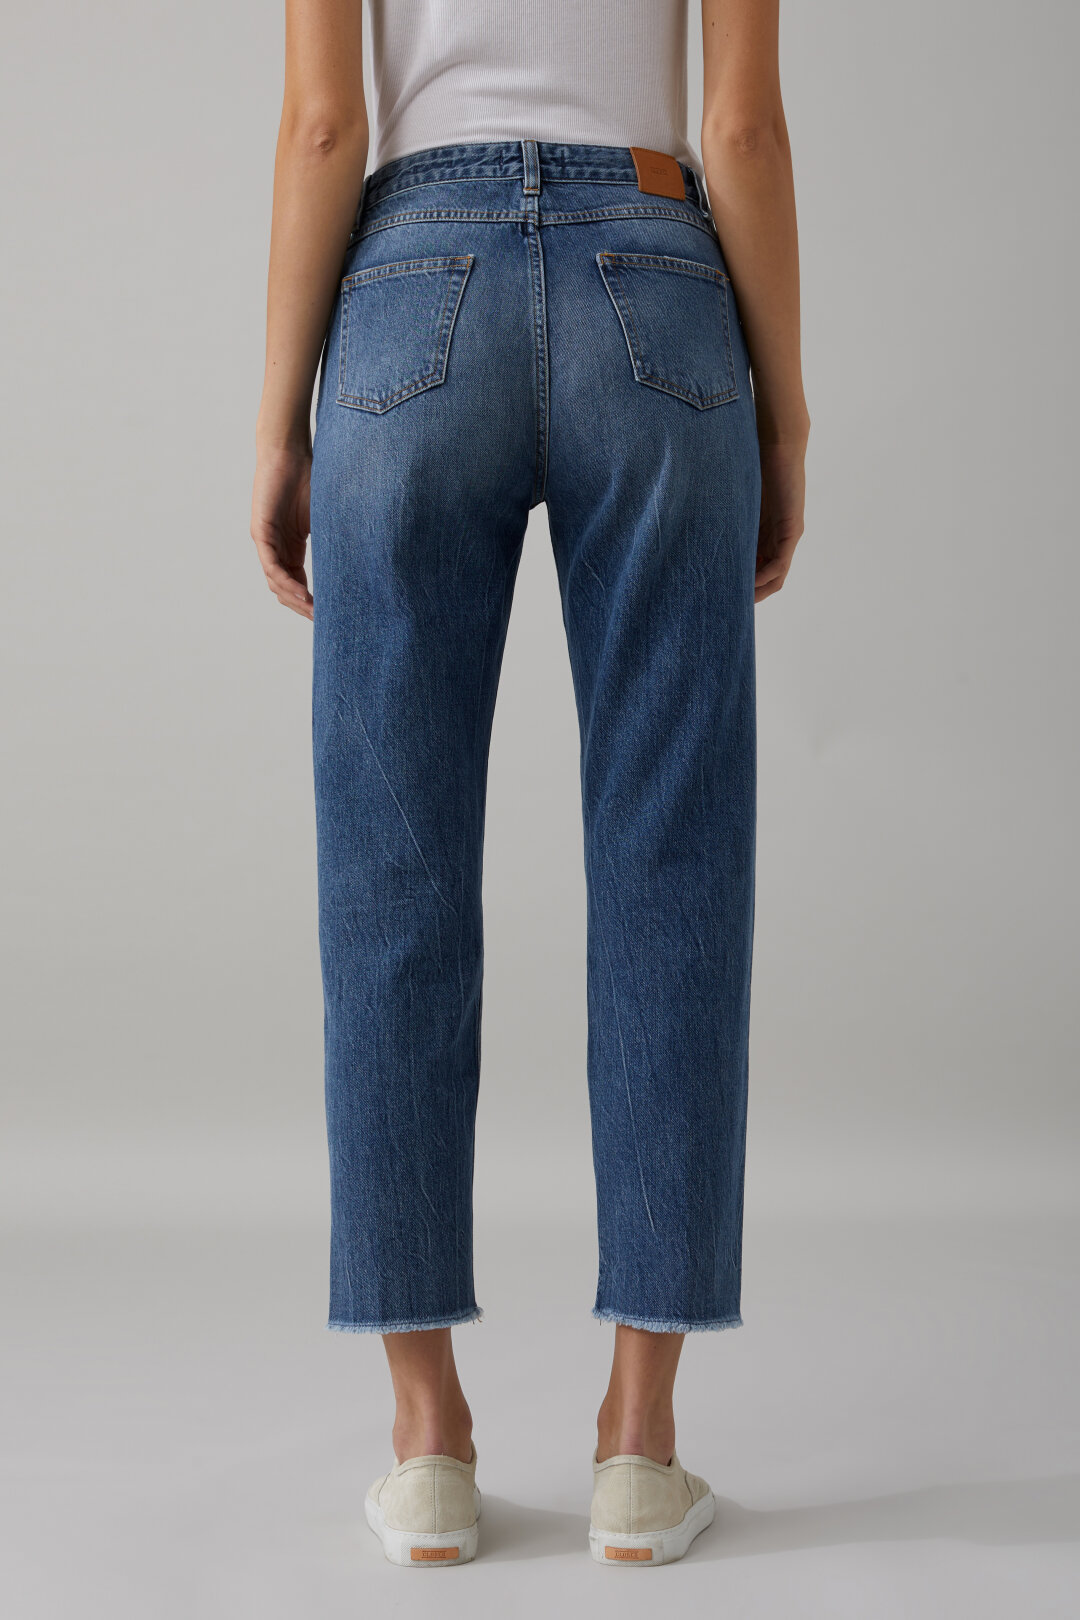 Heartbreaker Historic Indigo Denim